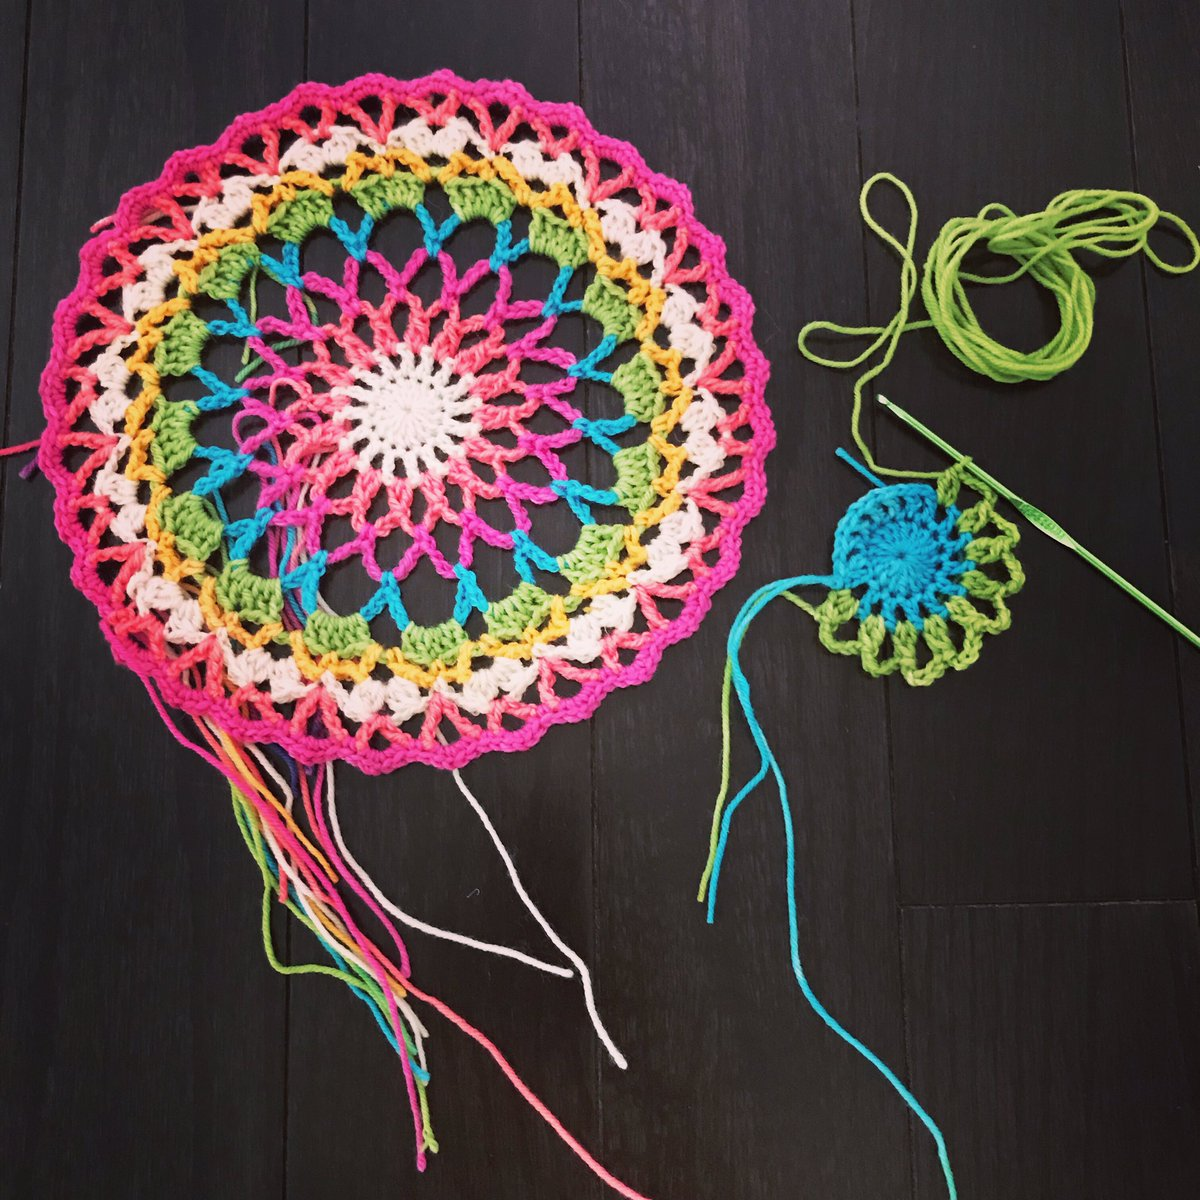 test Twitter Media - The children have been asking for one of these for a long time. They can be called dream catchers or mandalas, but in a Portuguese home, they are crocheted doilies. Repeating patterns and stitches are extremely important in crocheting and knitting.  #everyonecanlearnmath #crochet https://t.co/x5nF2DT923